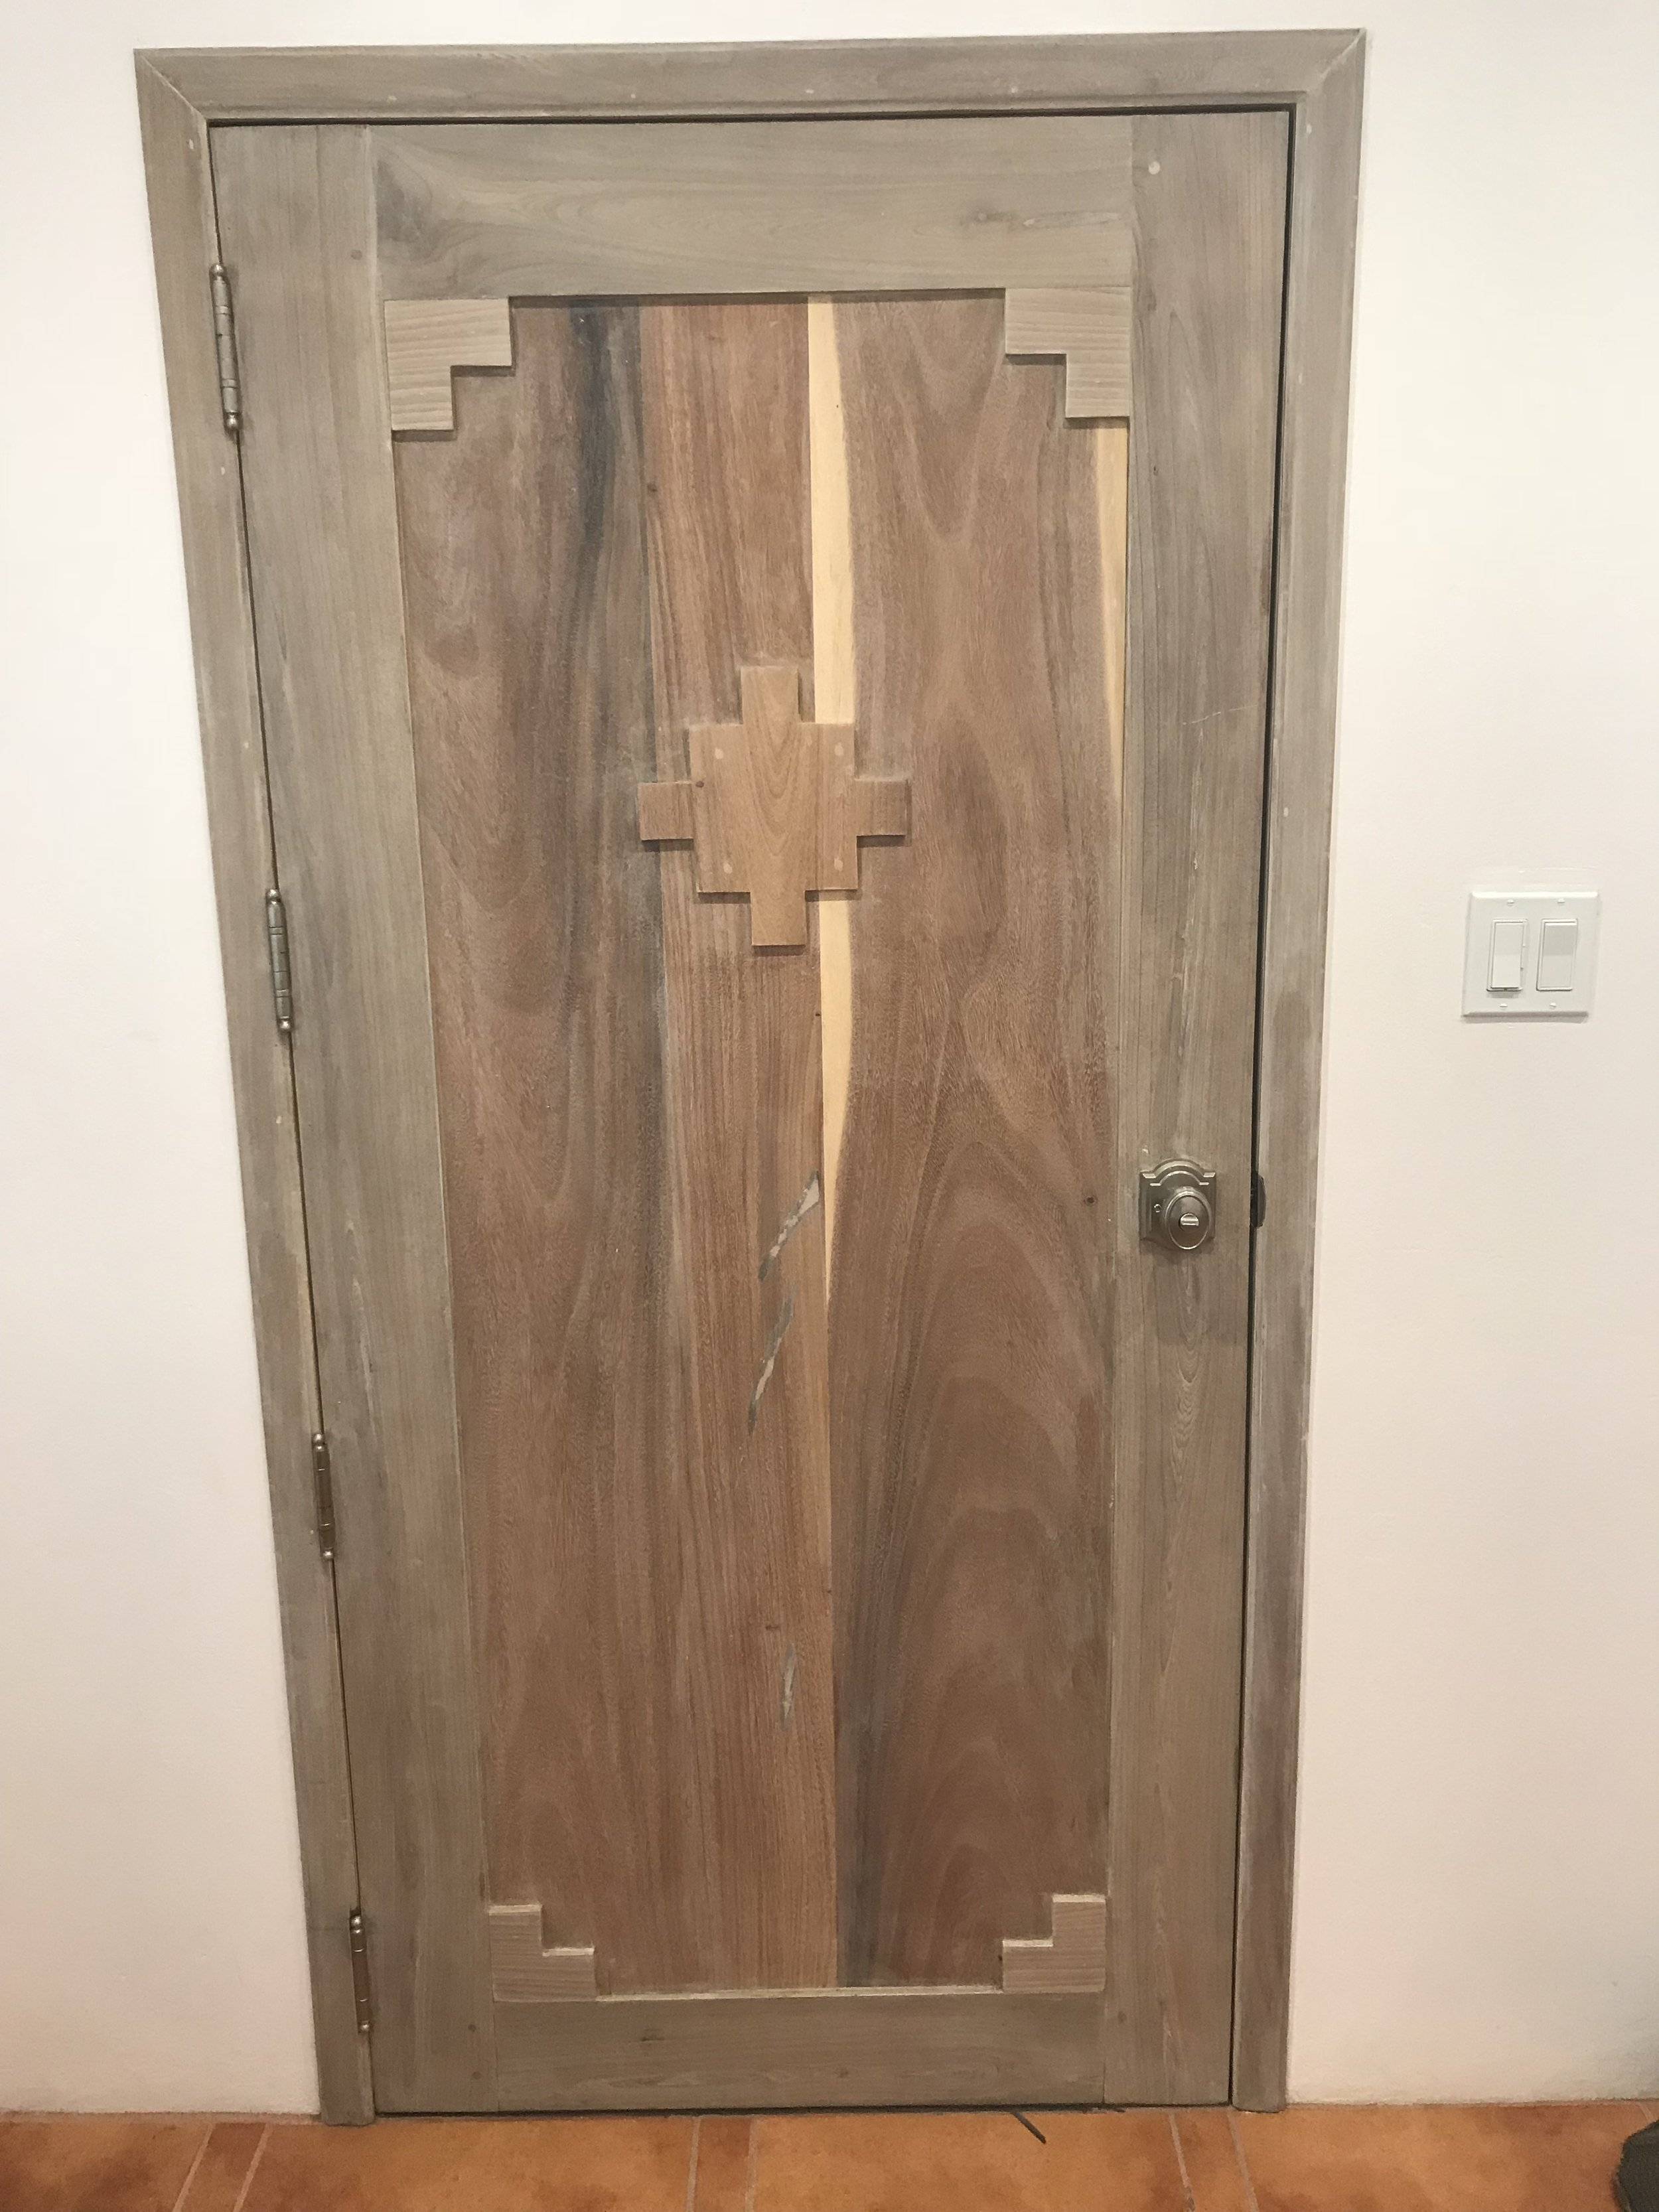 Guest room doors (interior)